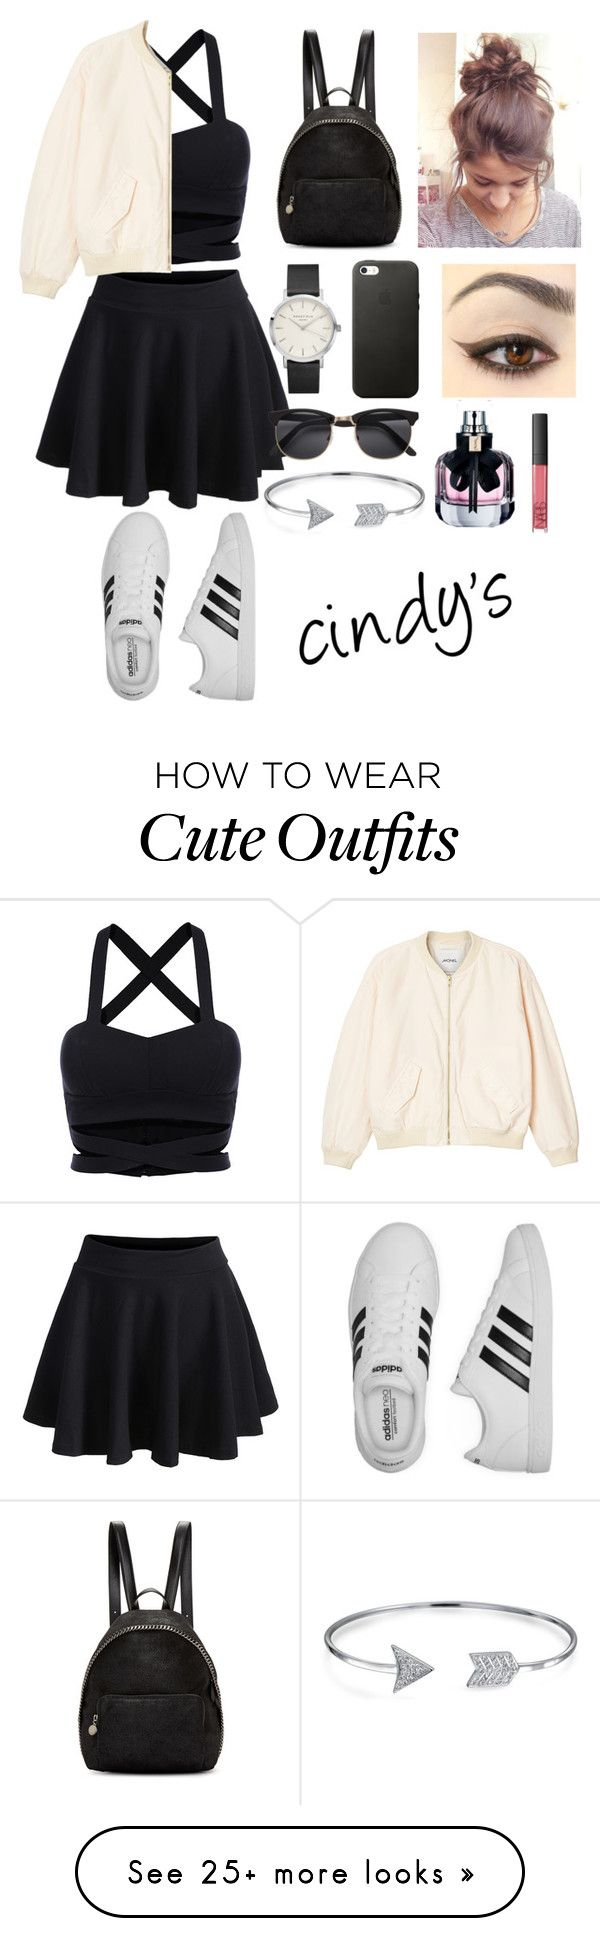 """outfit of the day1"" by cindyvirgantari on Polyvore featuring Monki, STELLA McCARTNEY, adidas, Bling Jewelry, Yves Saint Laurent and NARS Cosmetics"